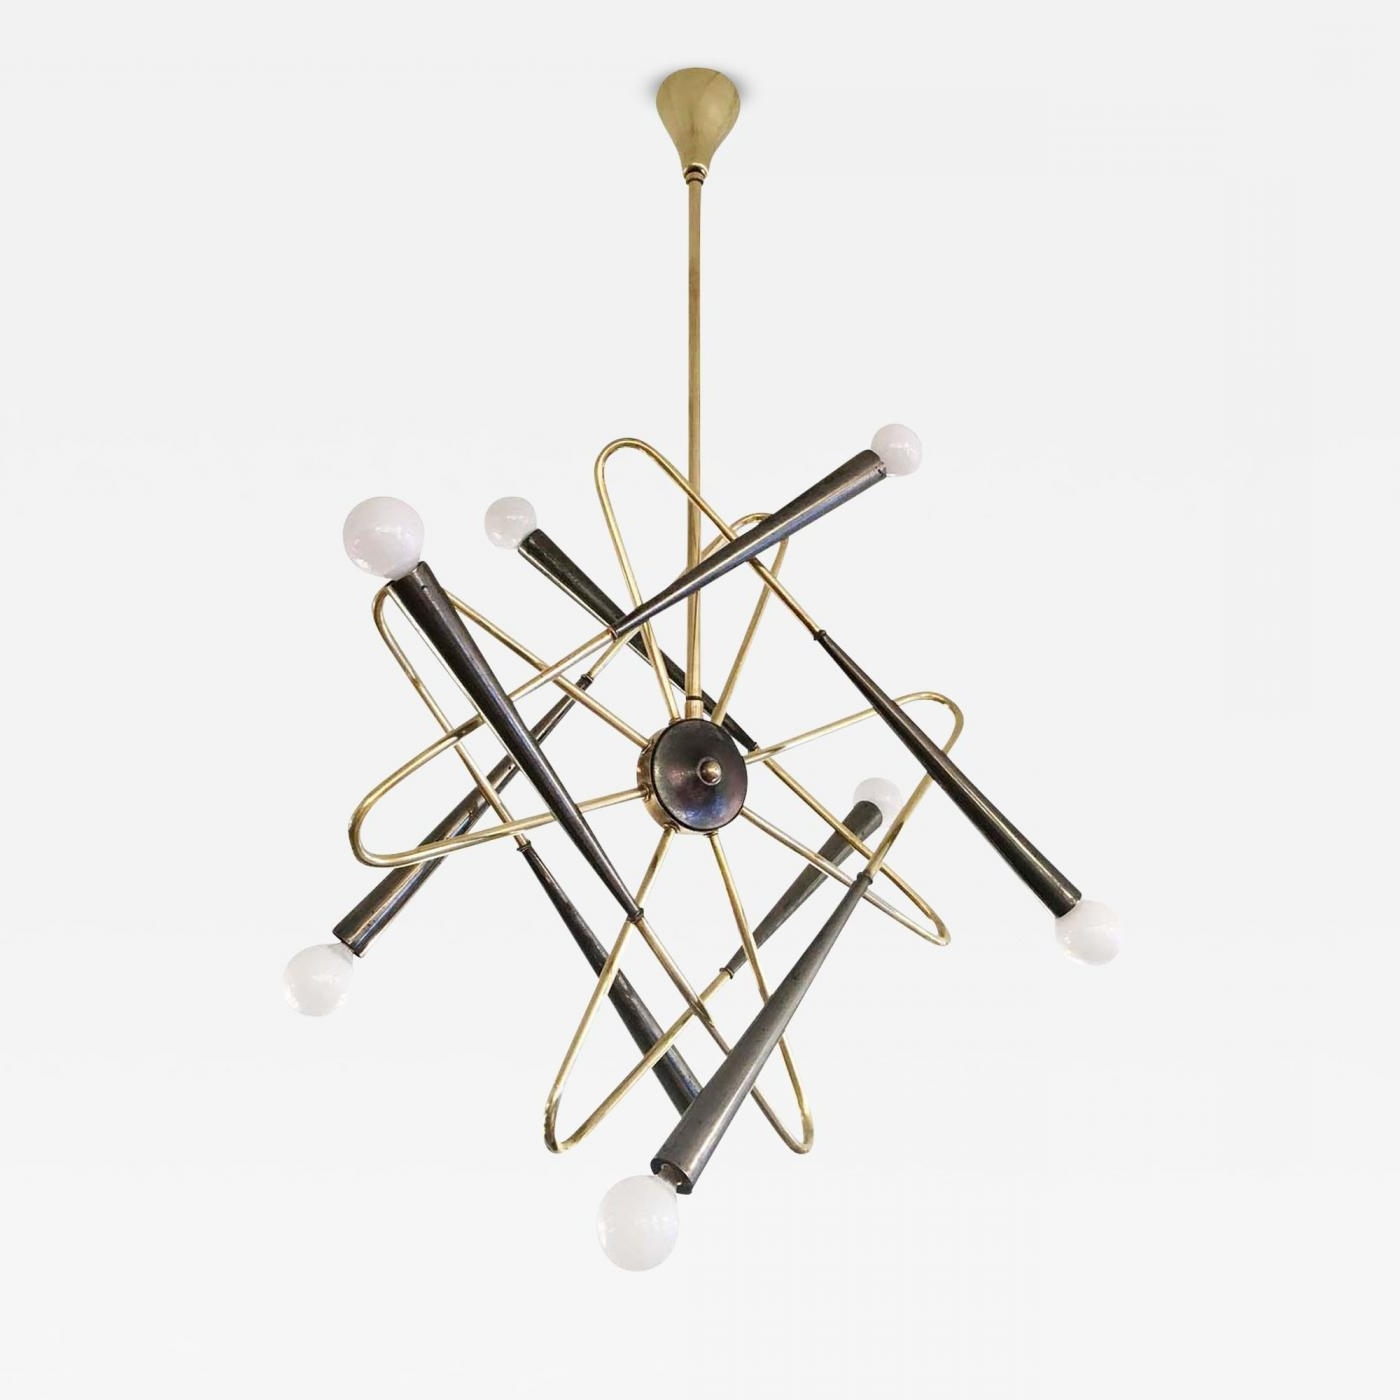 Unusual Chandeliers Within Favorite Chandelier: Glamorous Whimsical Chandeliers Whimsical Chandeliers (View 14 of 15)